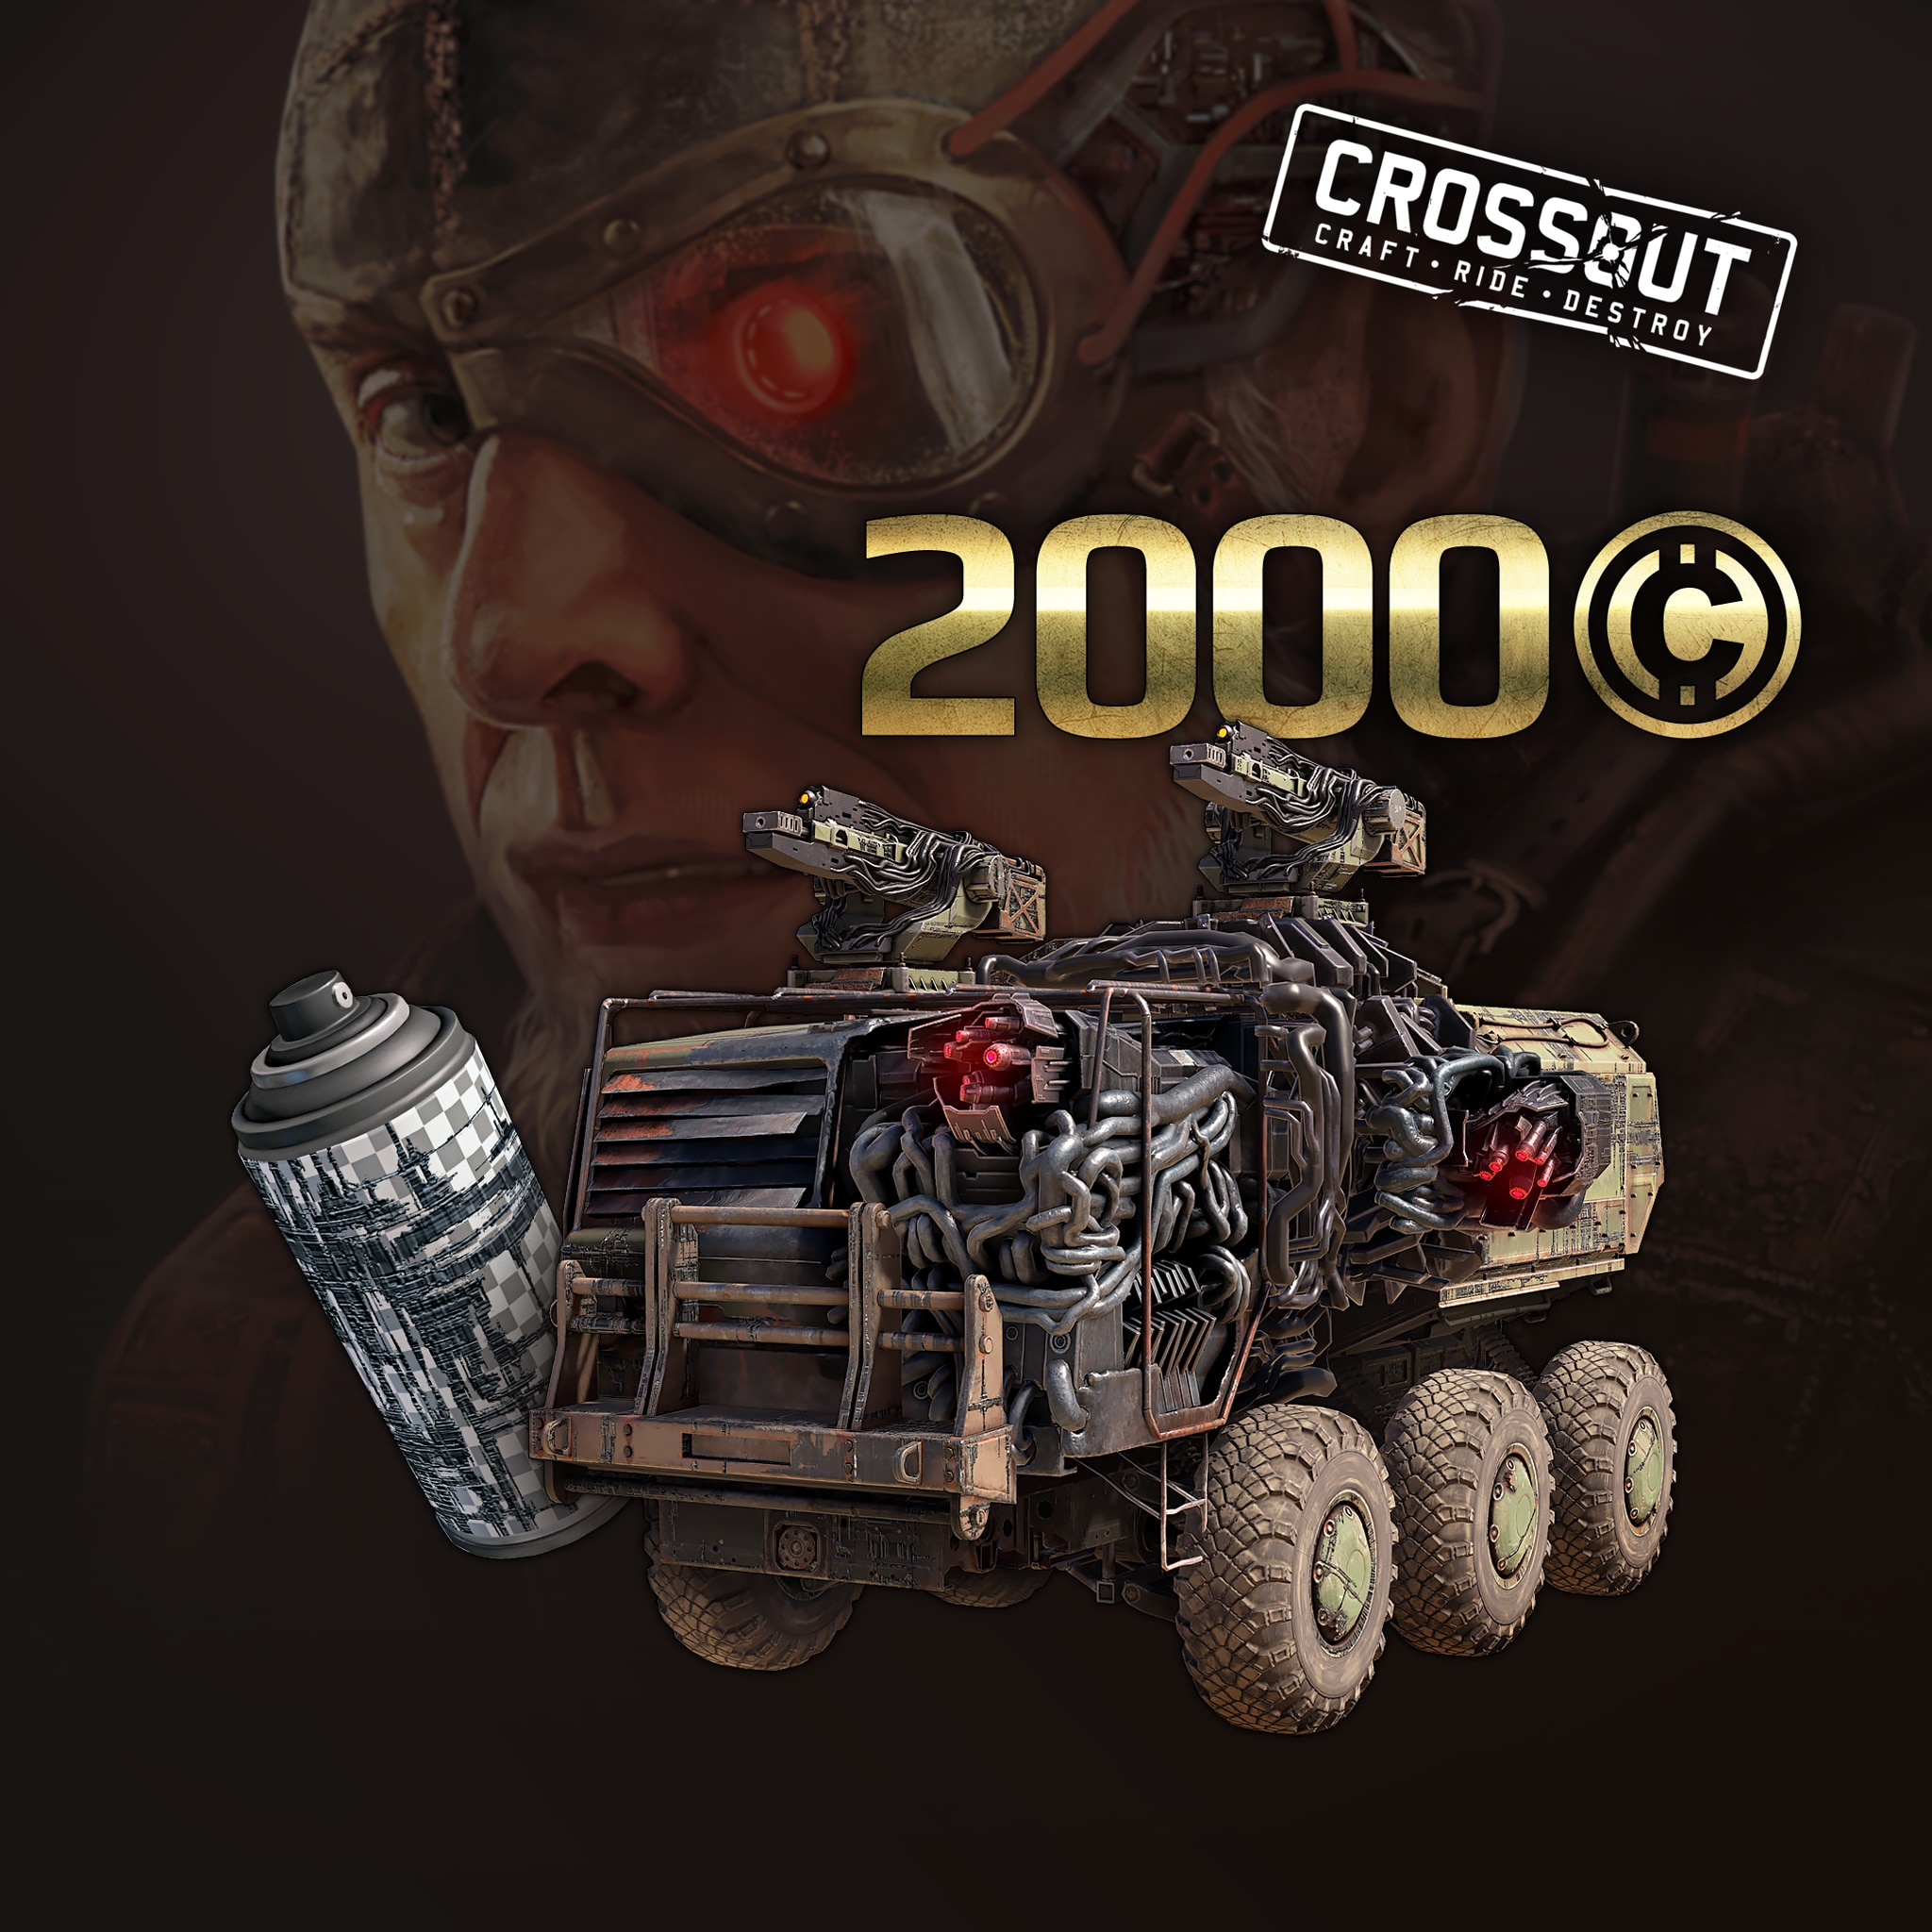 Crossout - Polymorph pack